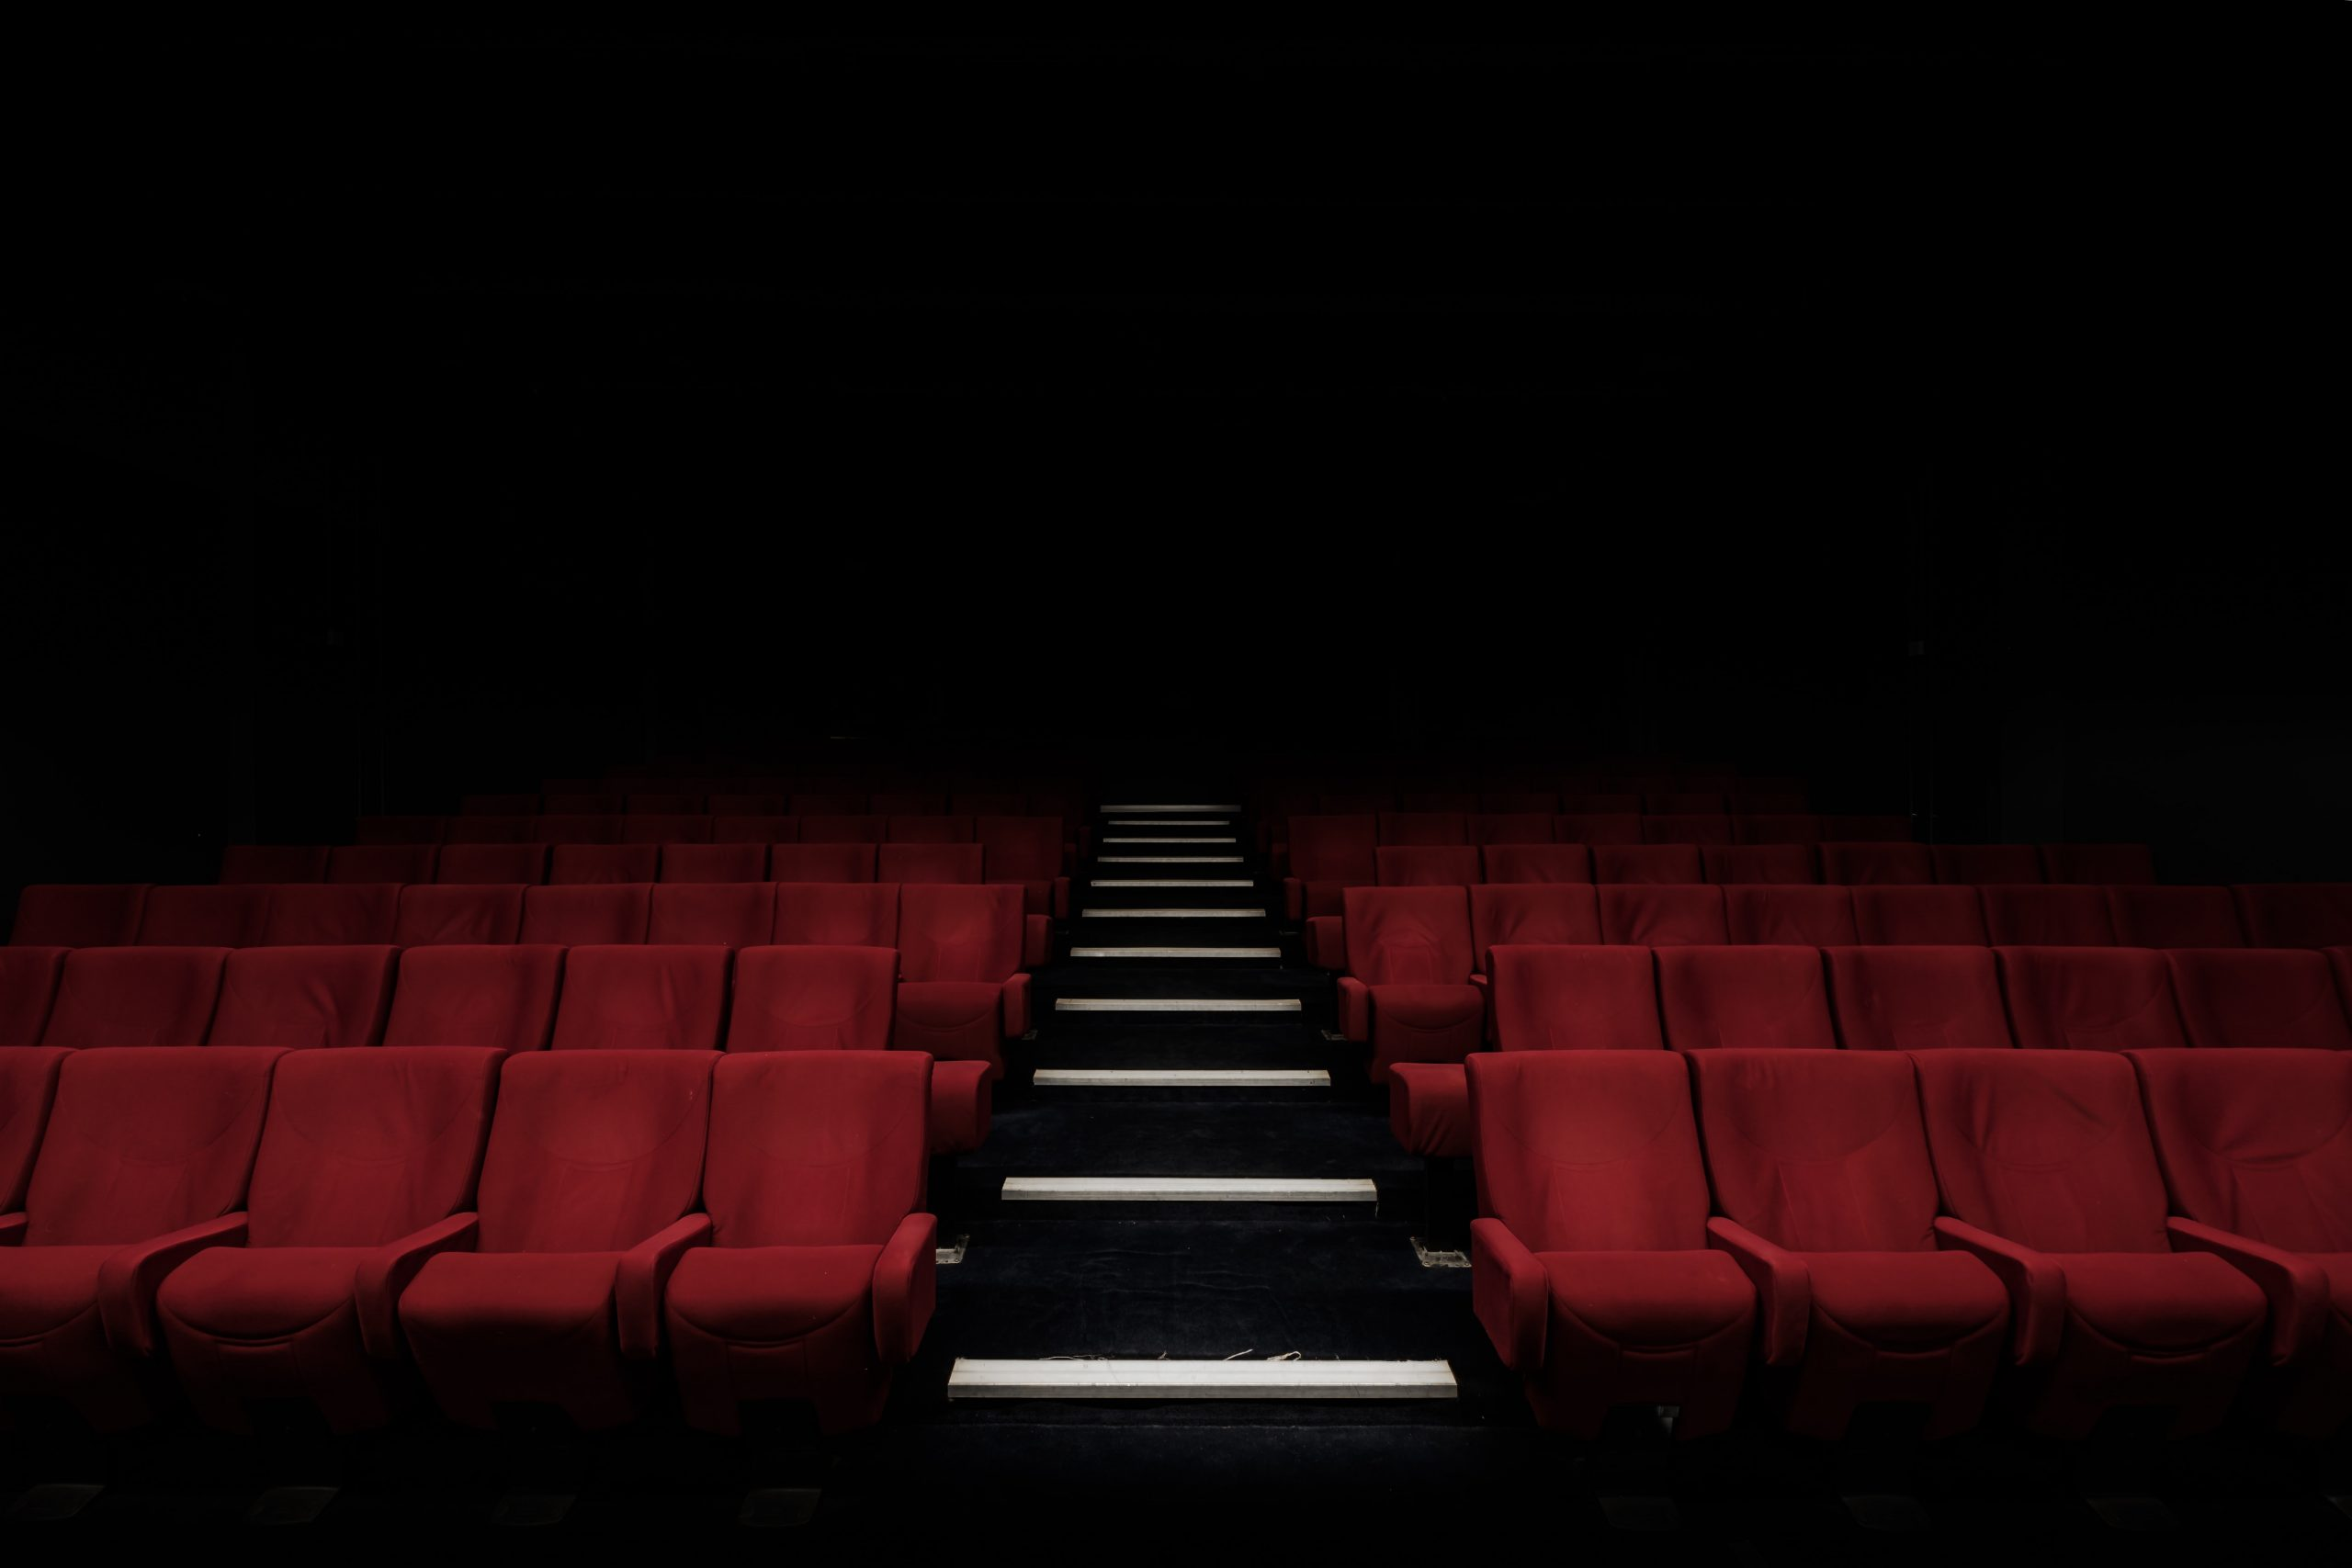 The Best Filmmaking Blogs in 2021 - An image of an empty movie theatre